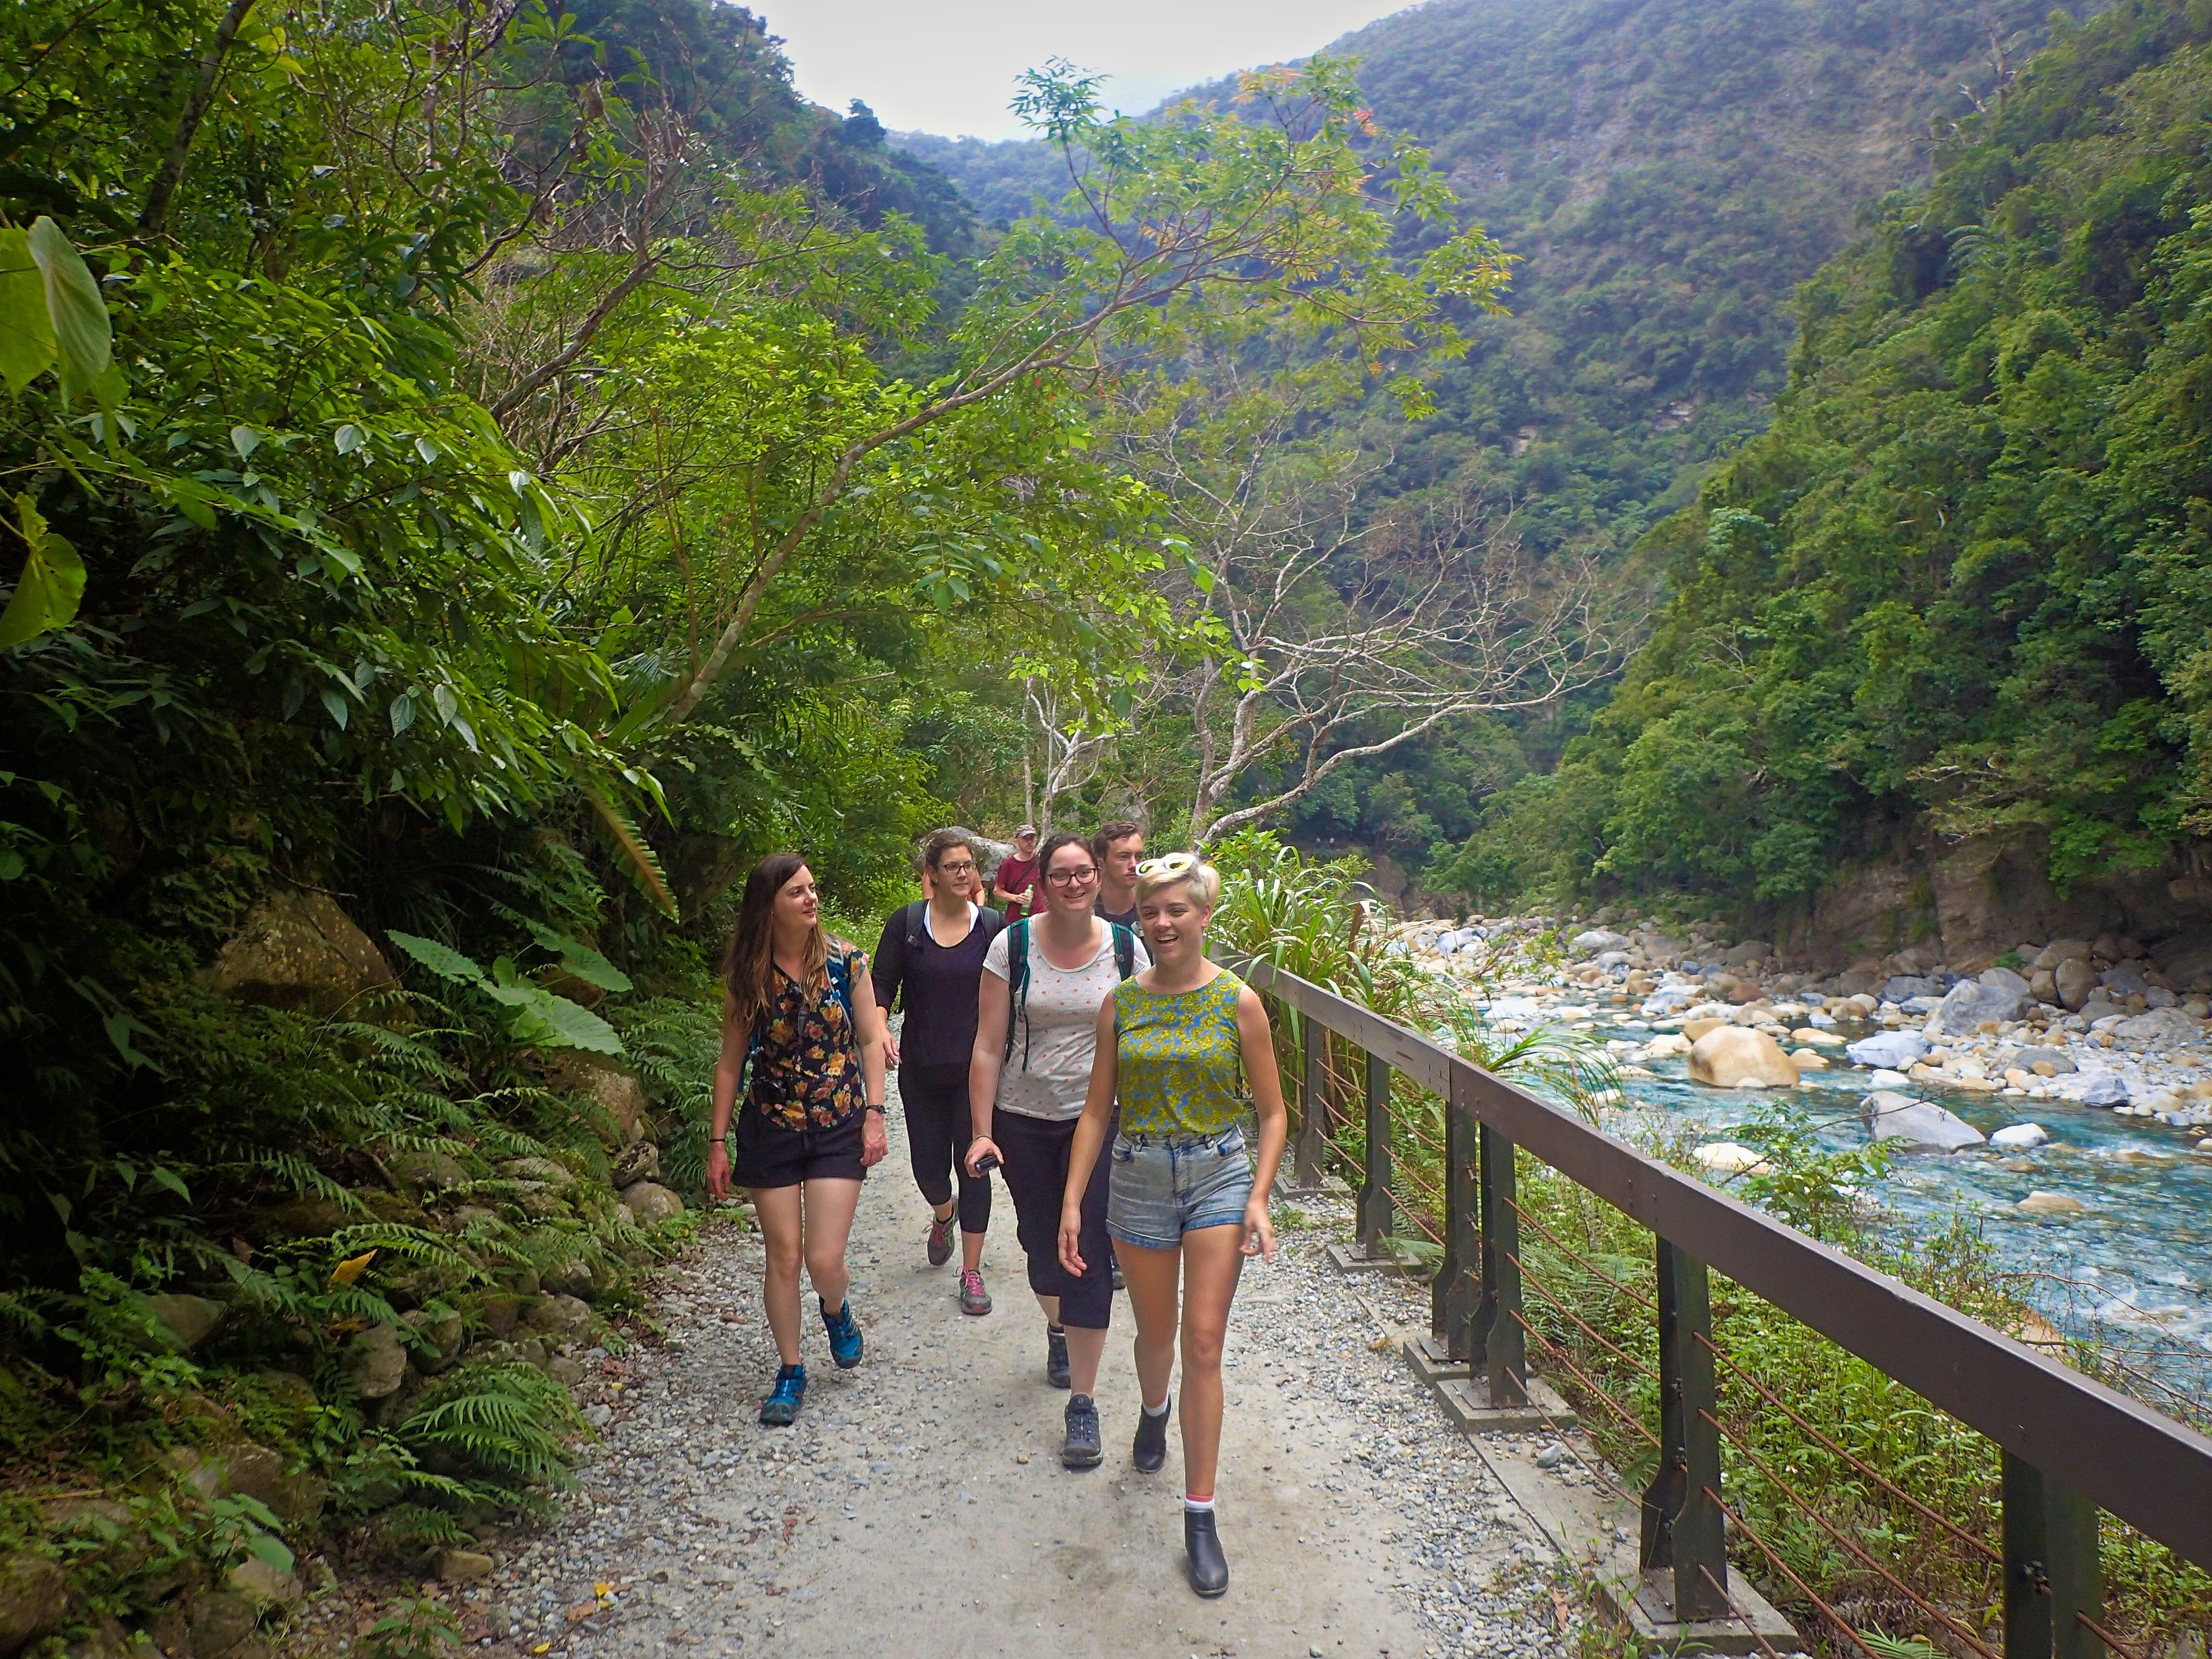 Taroko Gorge Day Tour in English - Small Group - Early Start